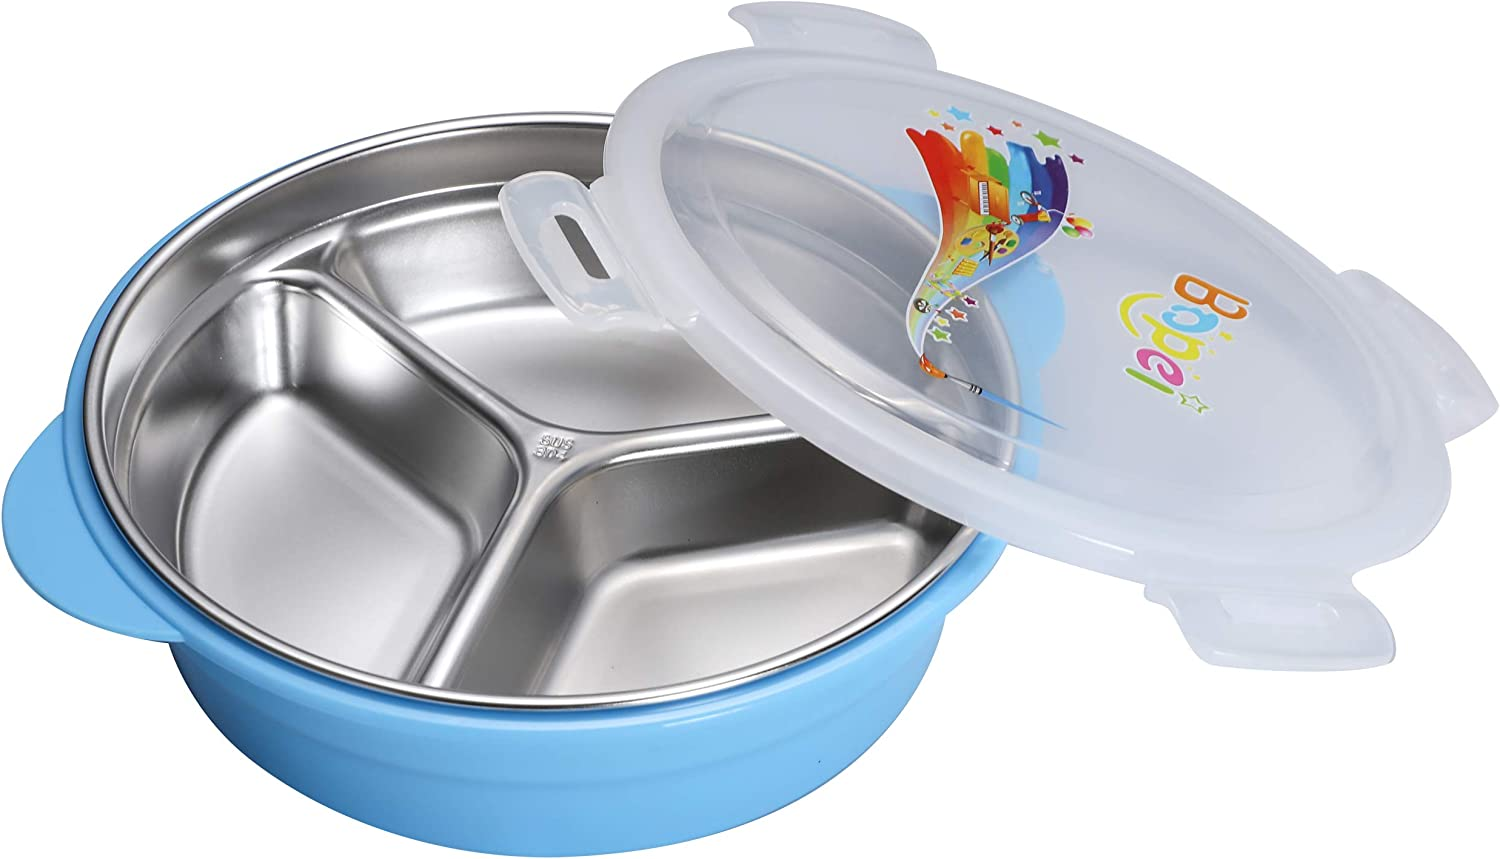 BrightBuy Kid Bento Lunch Box, Detachable Double Layer Toddler Baby Lunch Food Container Storage 304 Stainless Steel, BPA Free with Three Section Design Holds a Well-Balanced Variety of Foods (Blue)